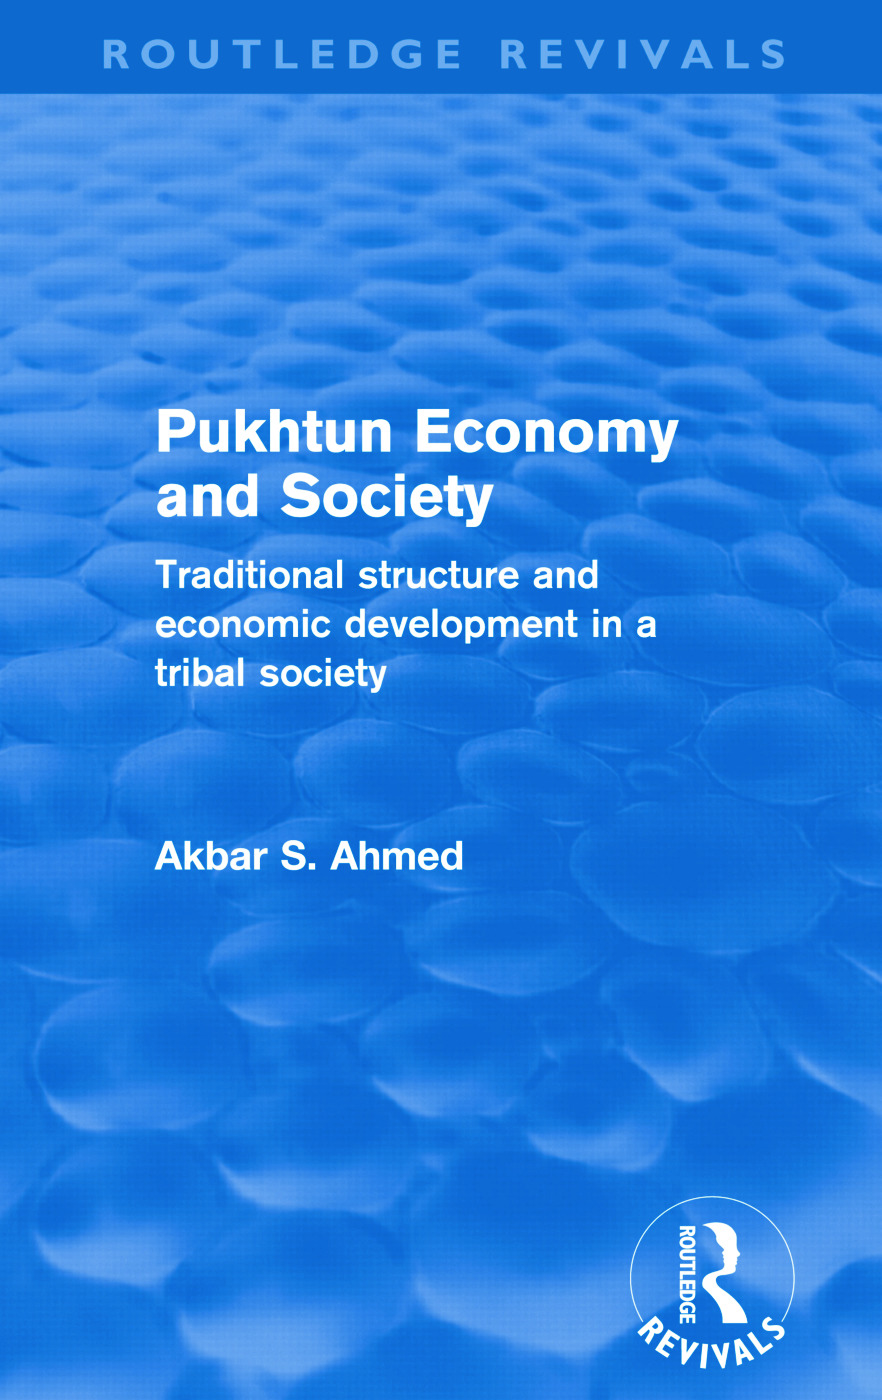 Pukhtun Economy and Society (Routledge Revivals): Traditional Structure and Economic Development in a Tribal Society (Paperback) book cover